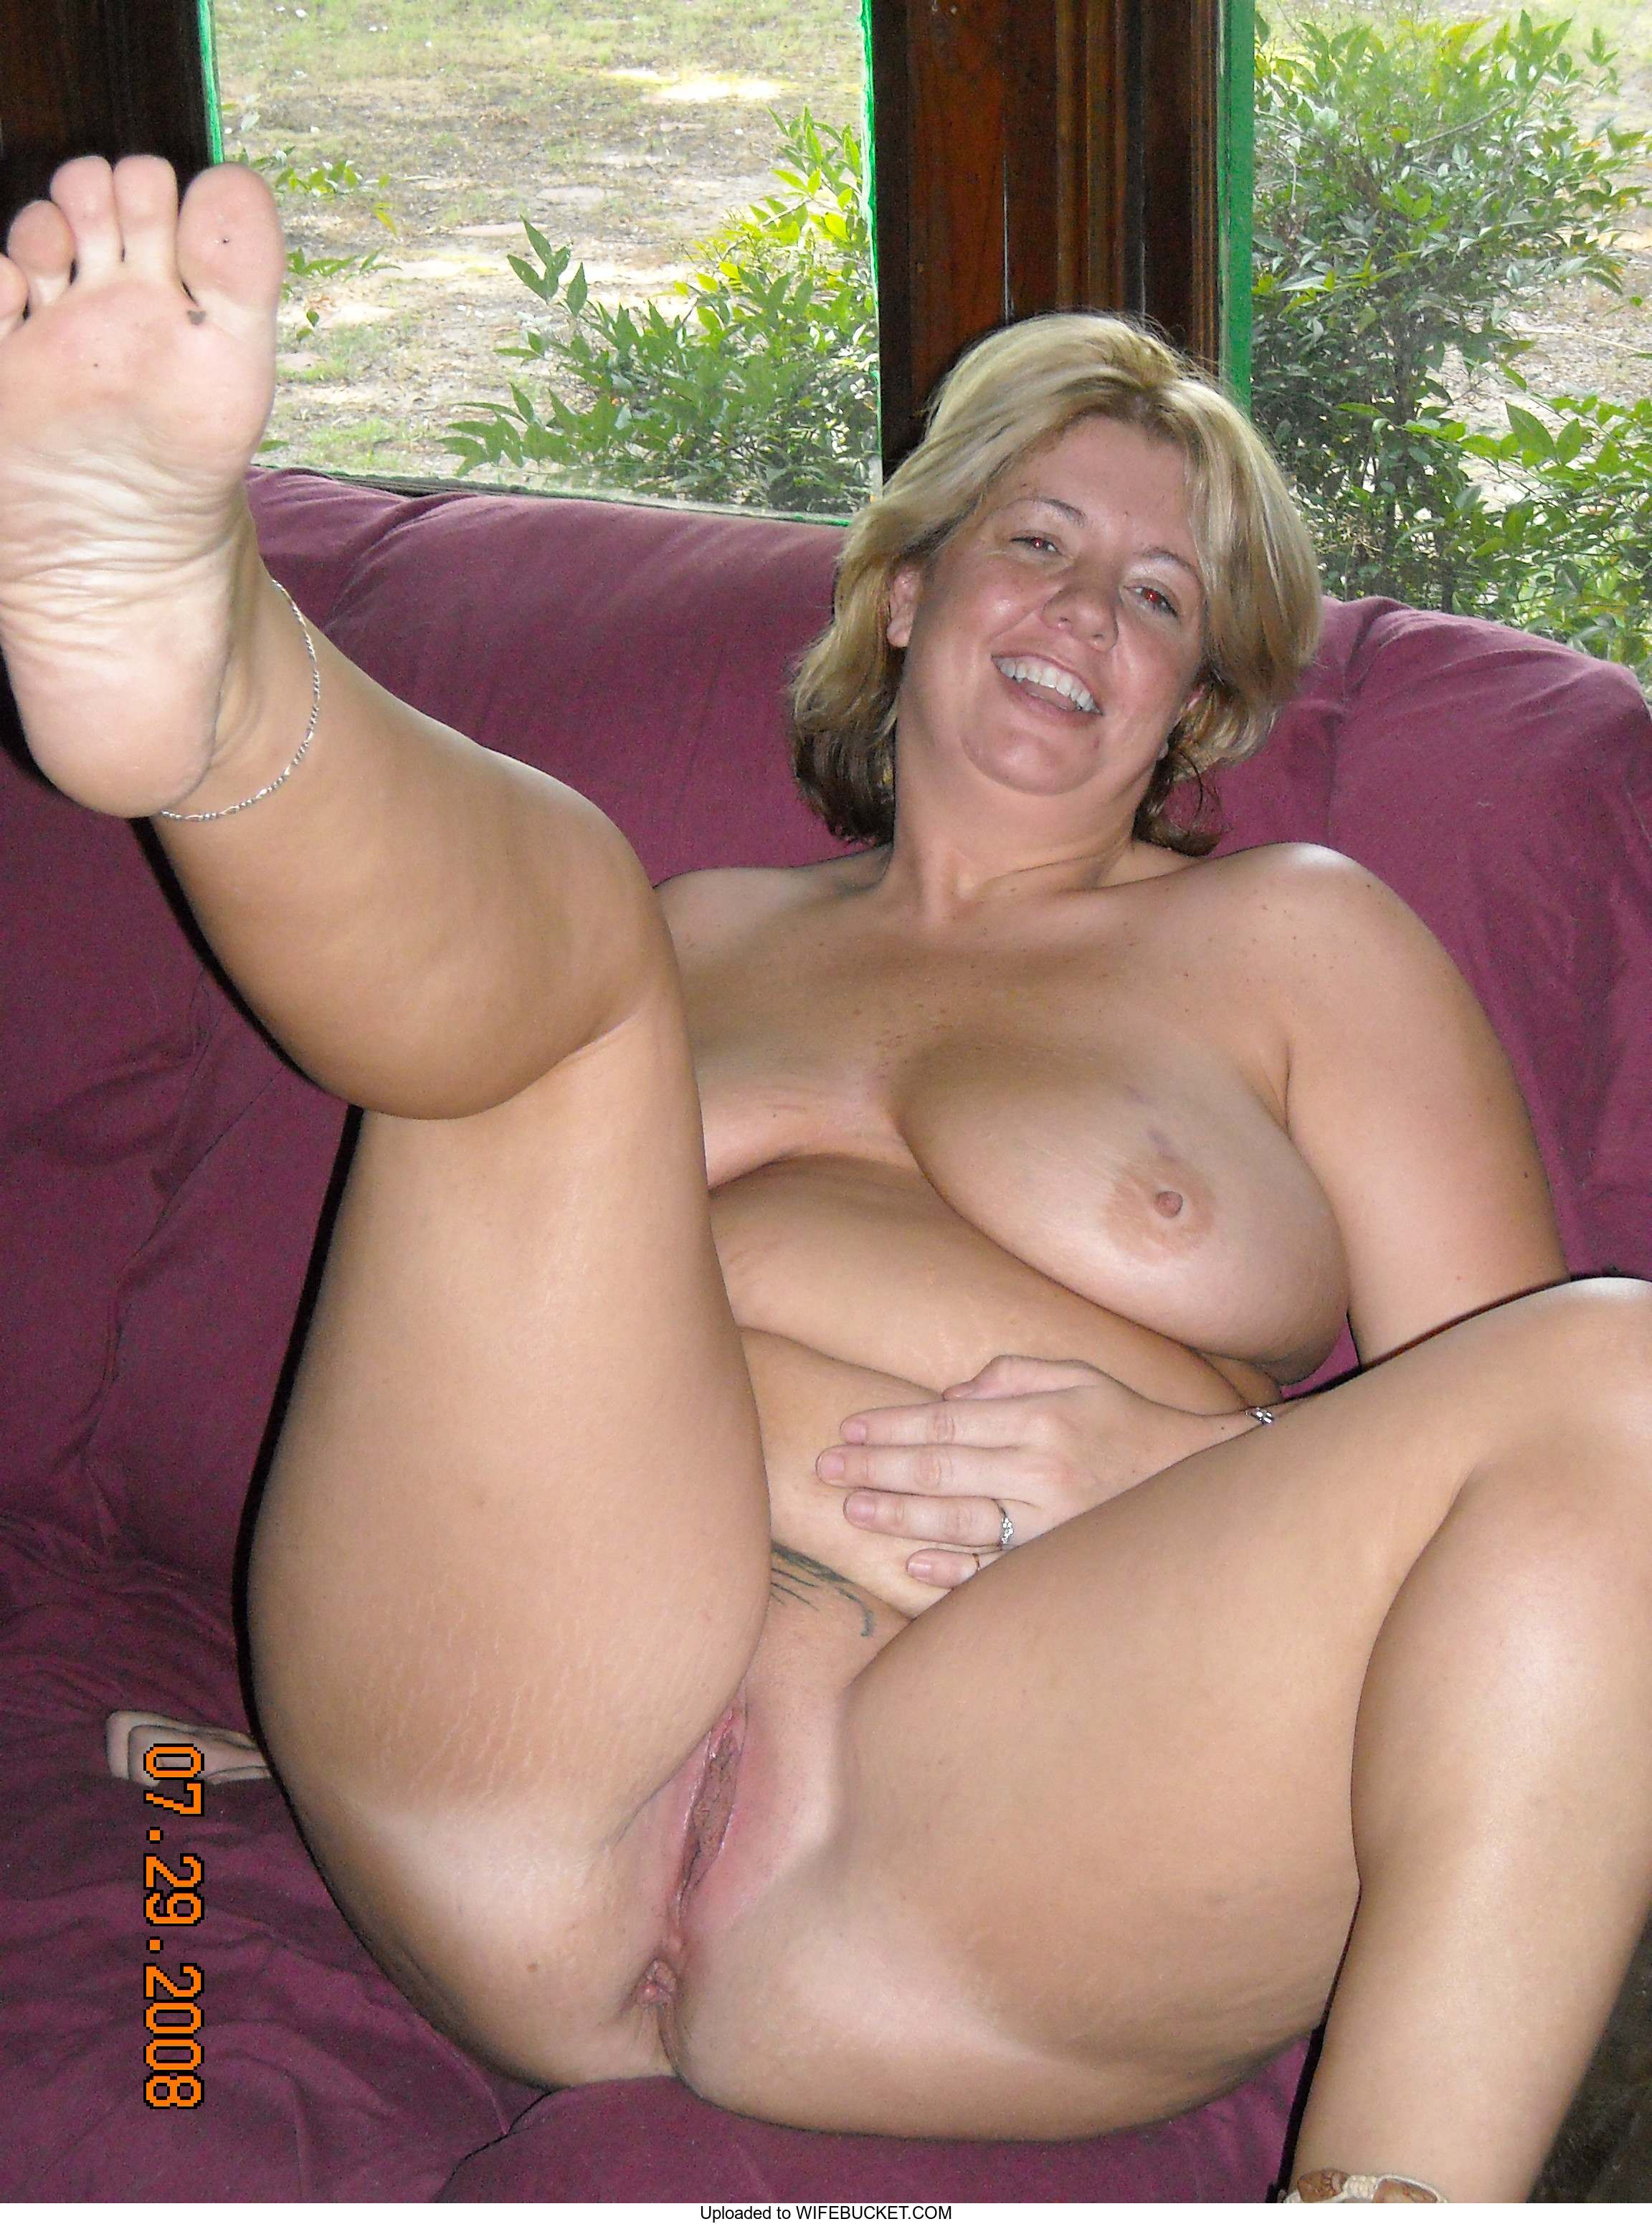 ashley nicely nude